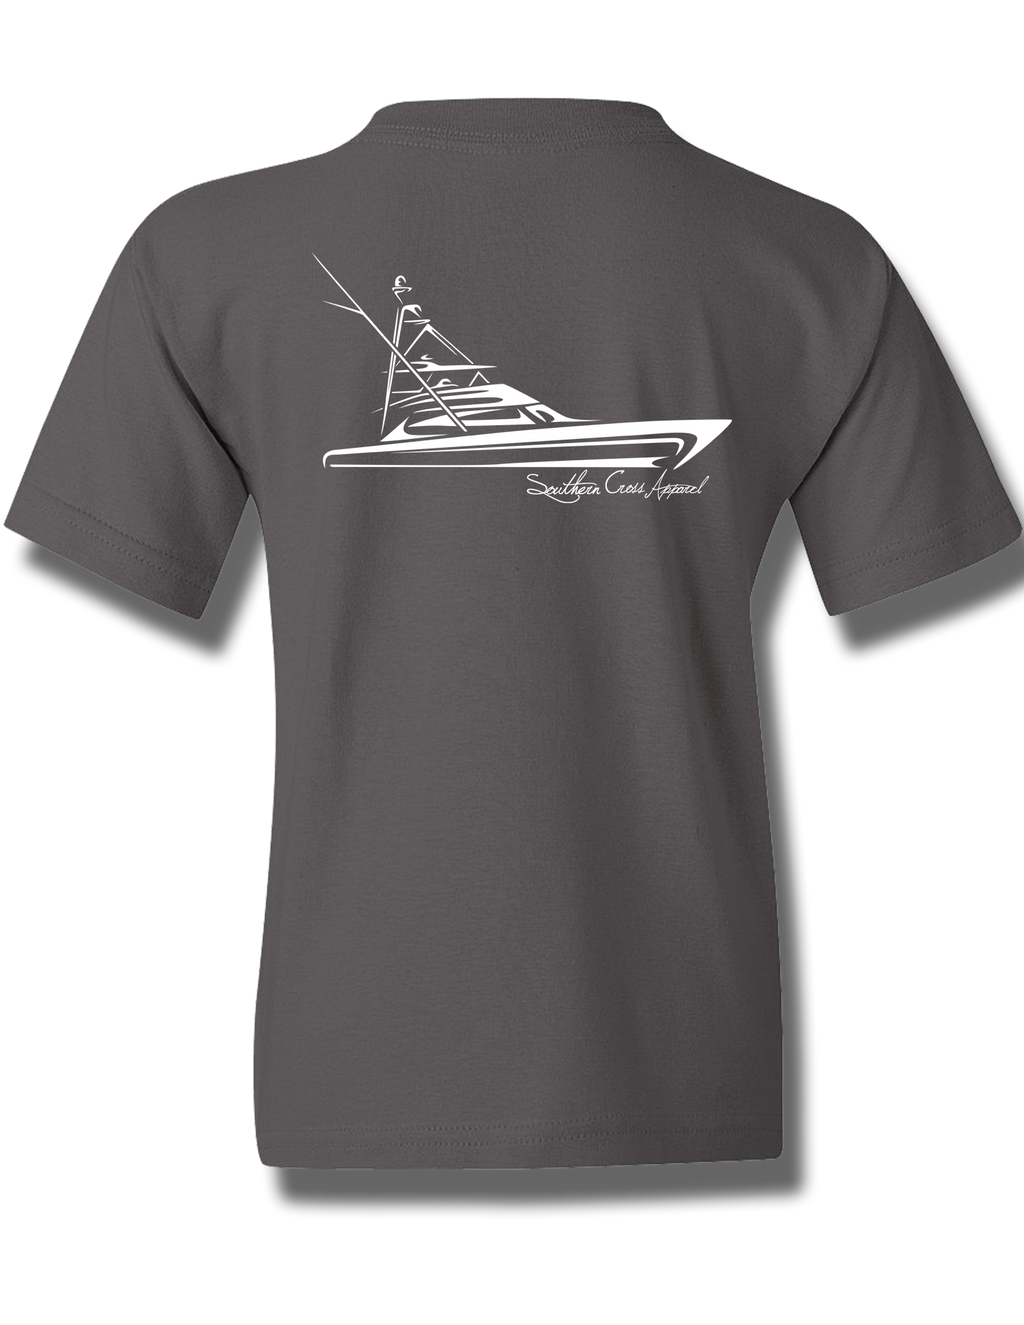 Tribal Sportfisher Charcoal Youth Short Sleeve M, T-Shirts - Southern Cross Apparel